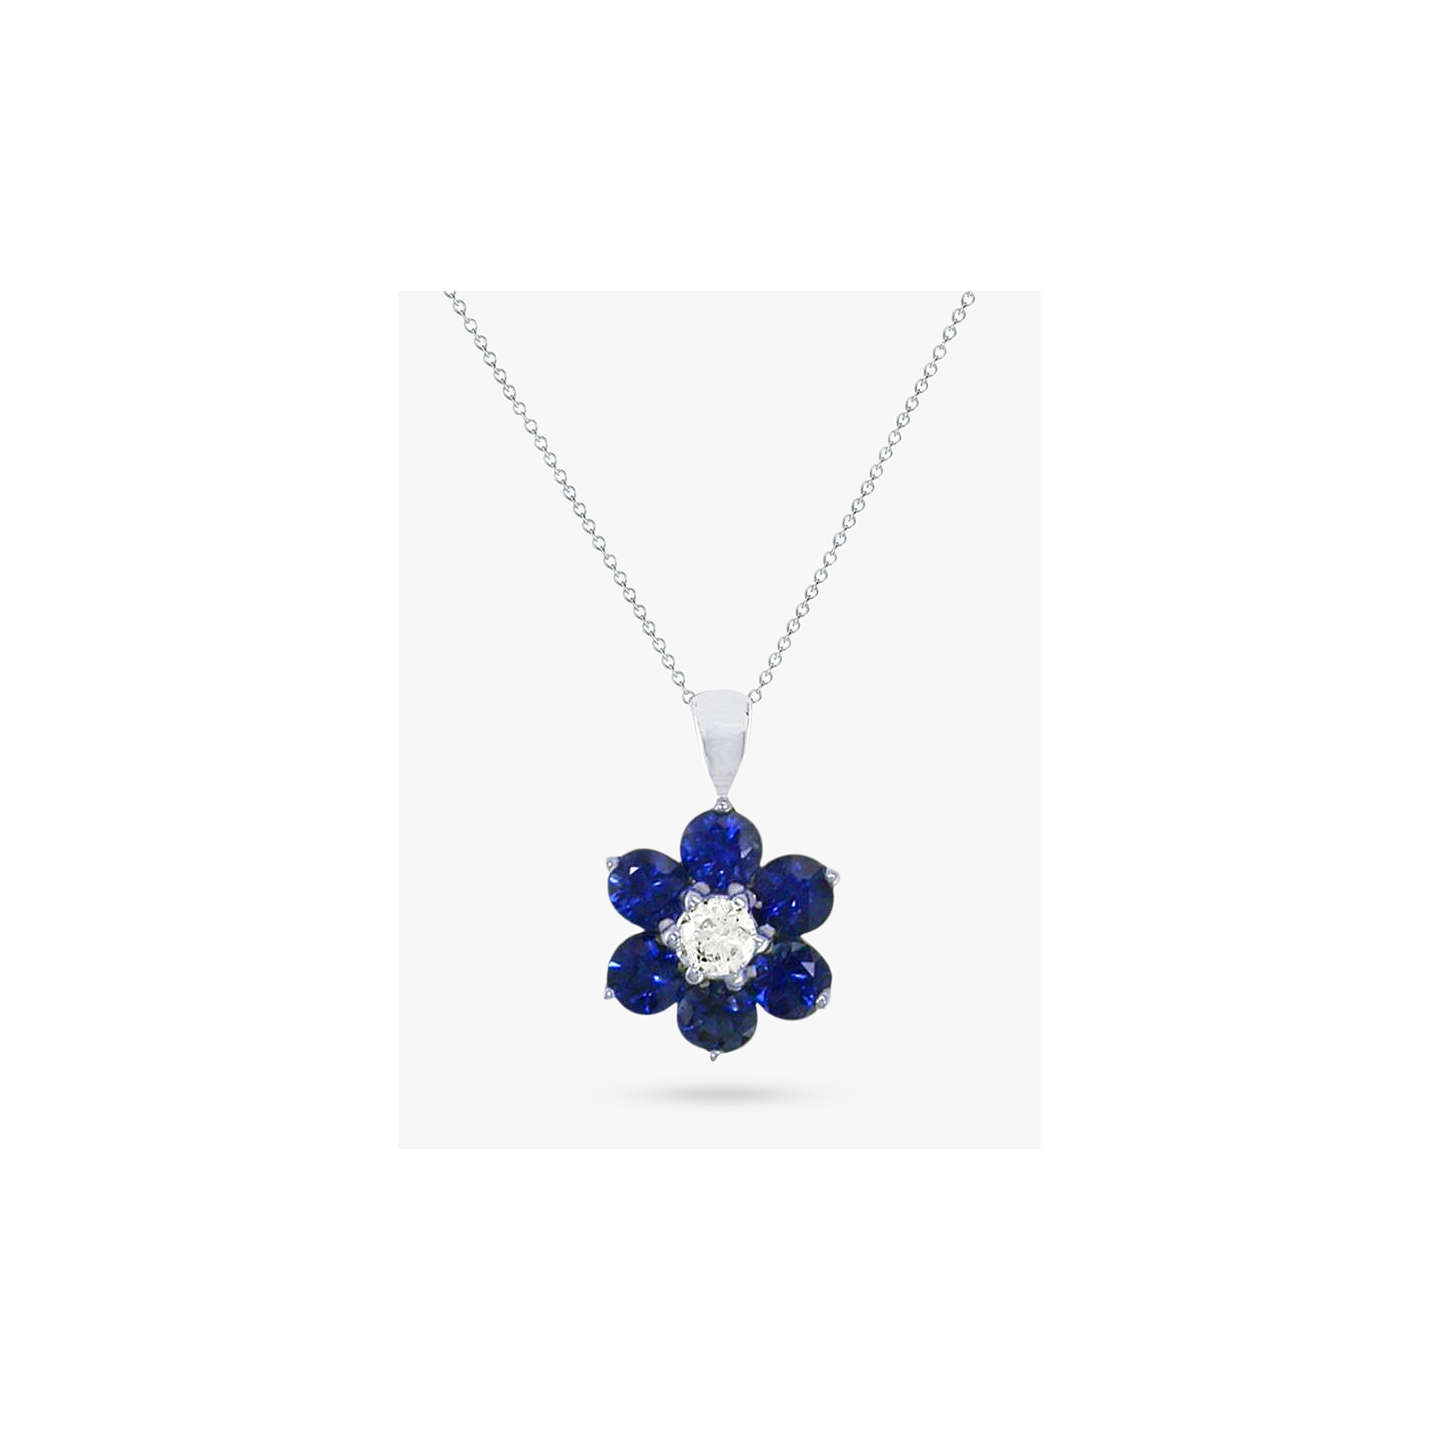 diamonds sapphires product gold in home necklaces deco art estate antique sapphire white step fine jewelry sold round full square gol necklace cut